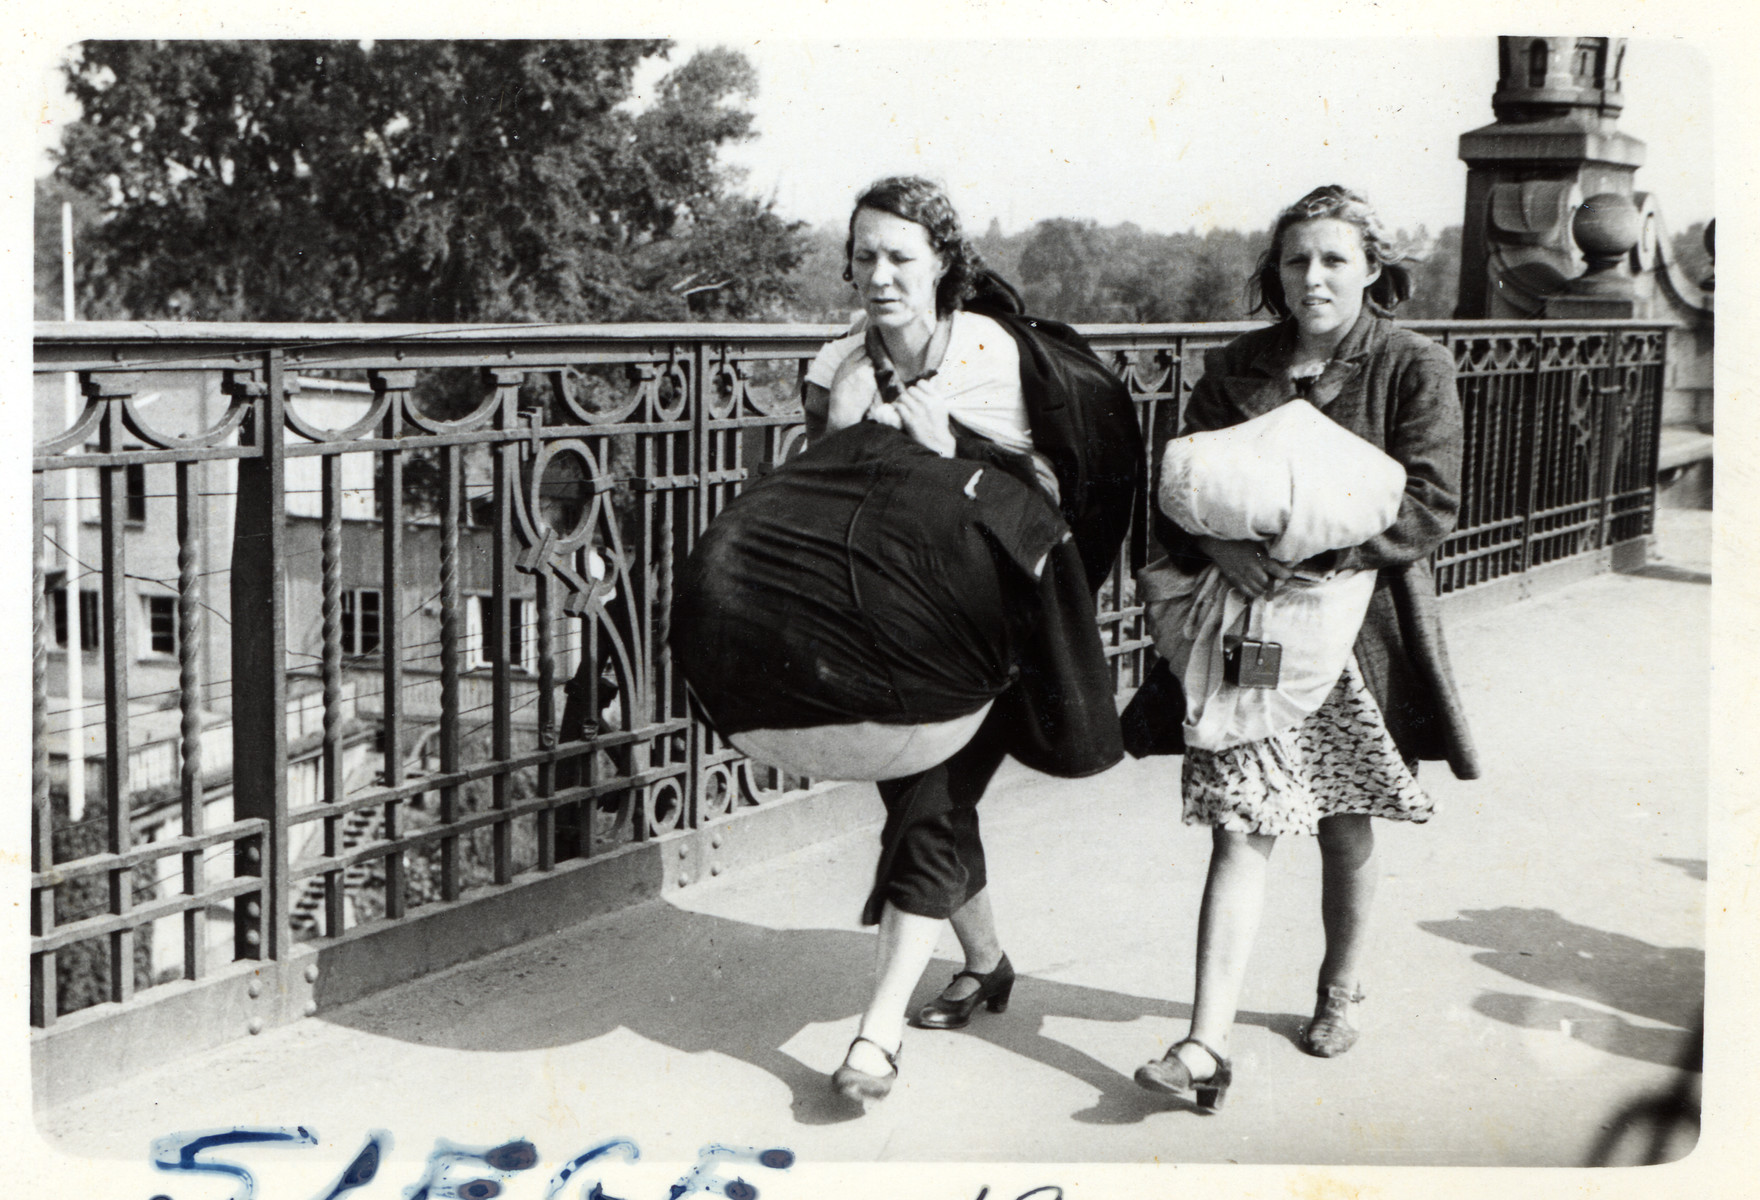 A Polish mother and daughter flee the besieged city of Warsaw with bedding and other essential household items.